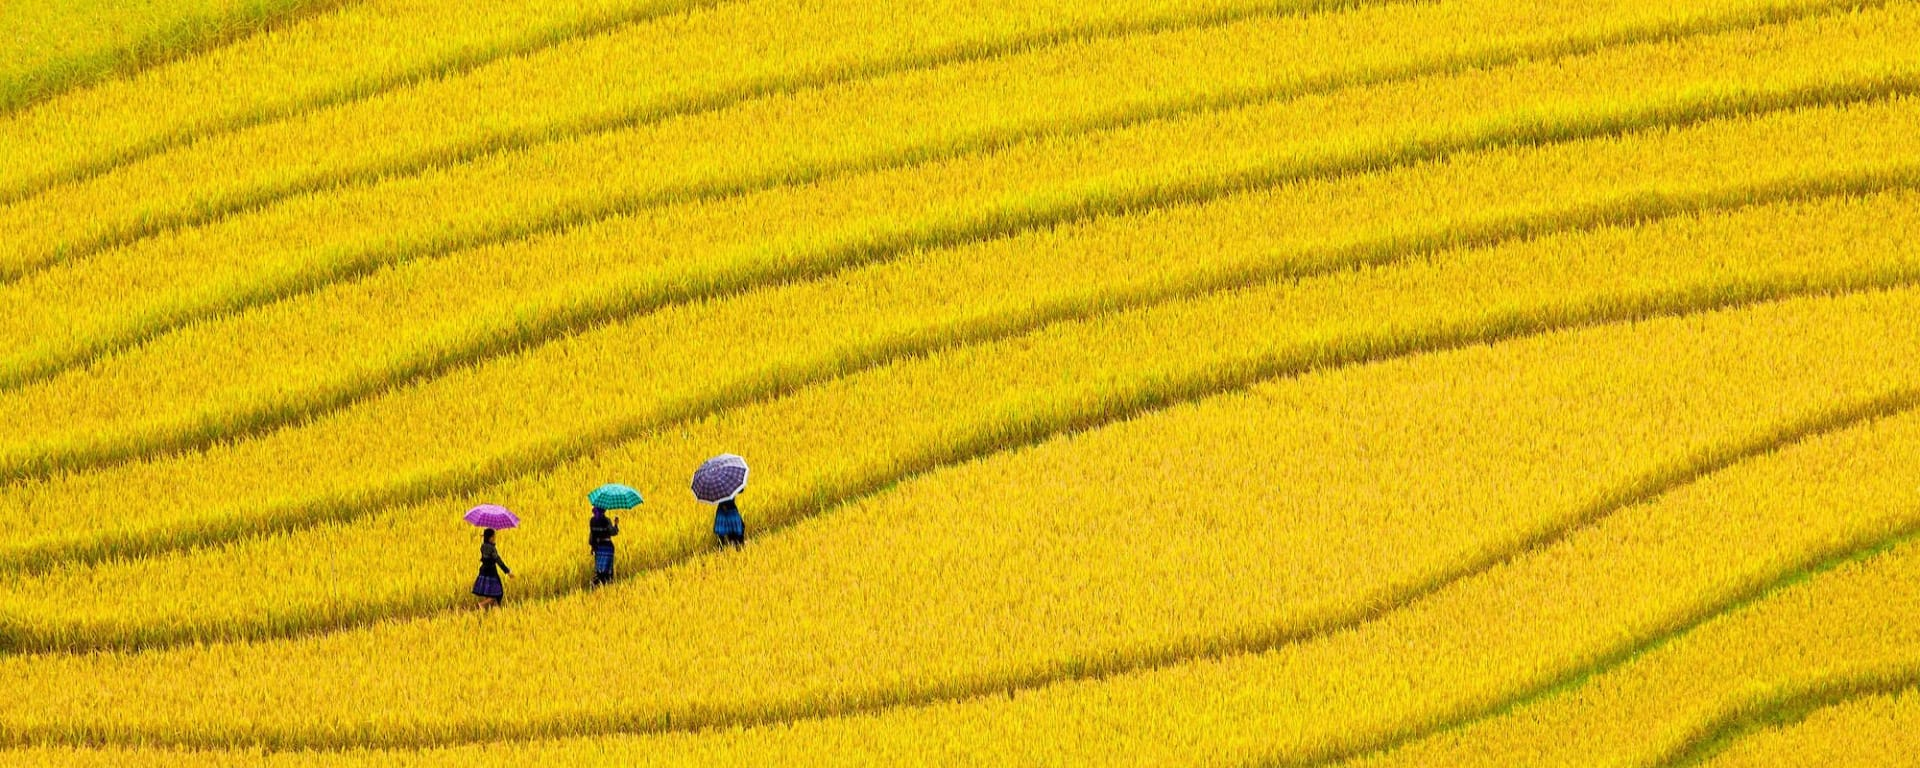 Wissenswertes zu Vietnam Reisen und Ferien: 3 people walking in a yellow rice field